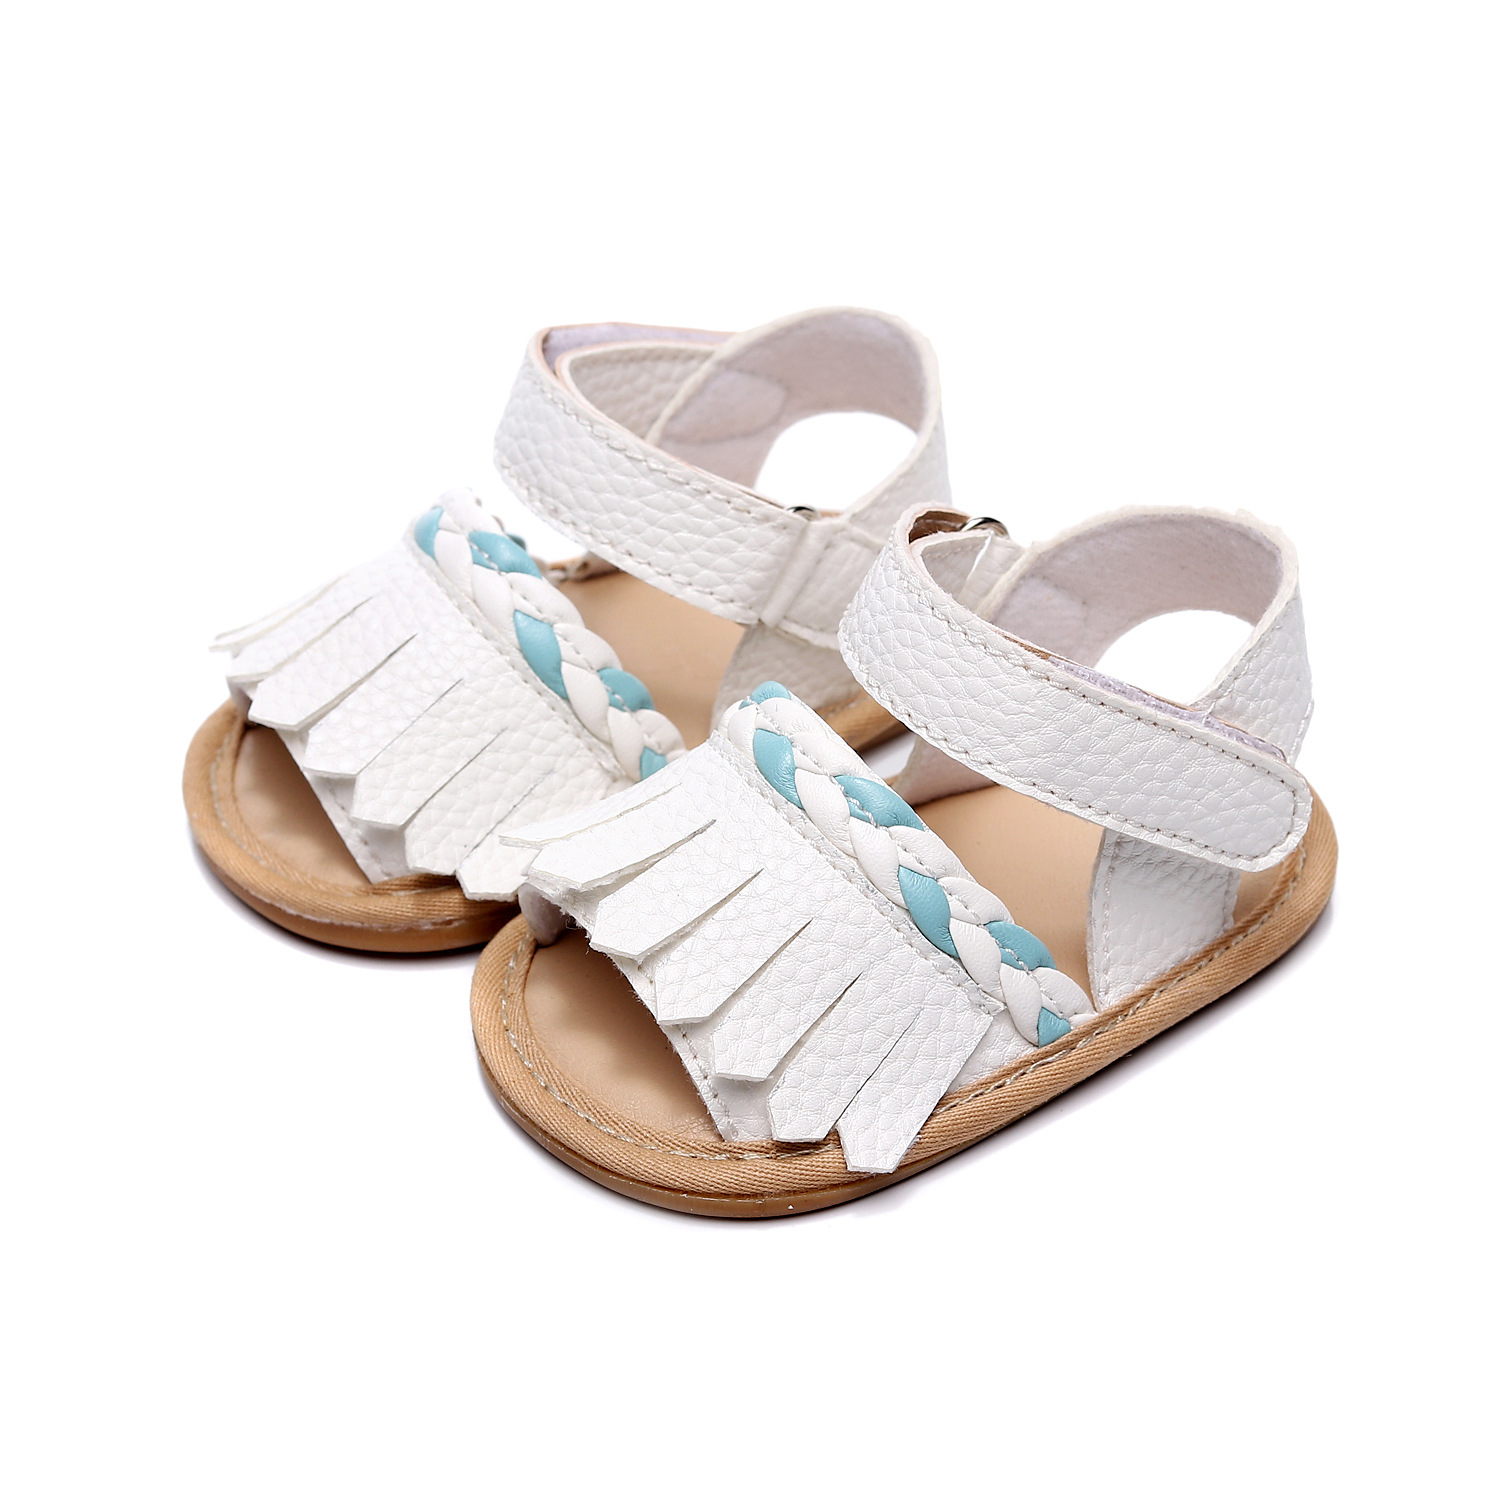 2020 Fashion Tassel Baby Girls Summer Shoes Infant Toddler First Walkers New Style Baby Leather Clogs